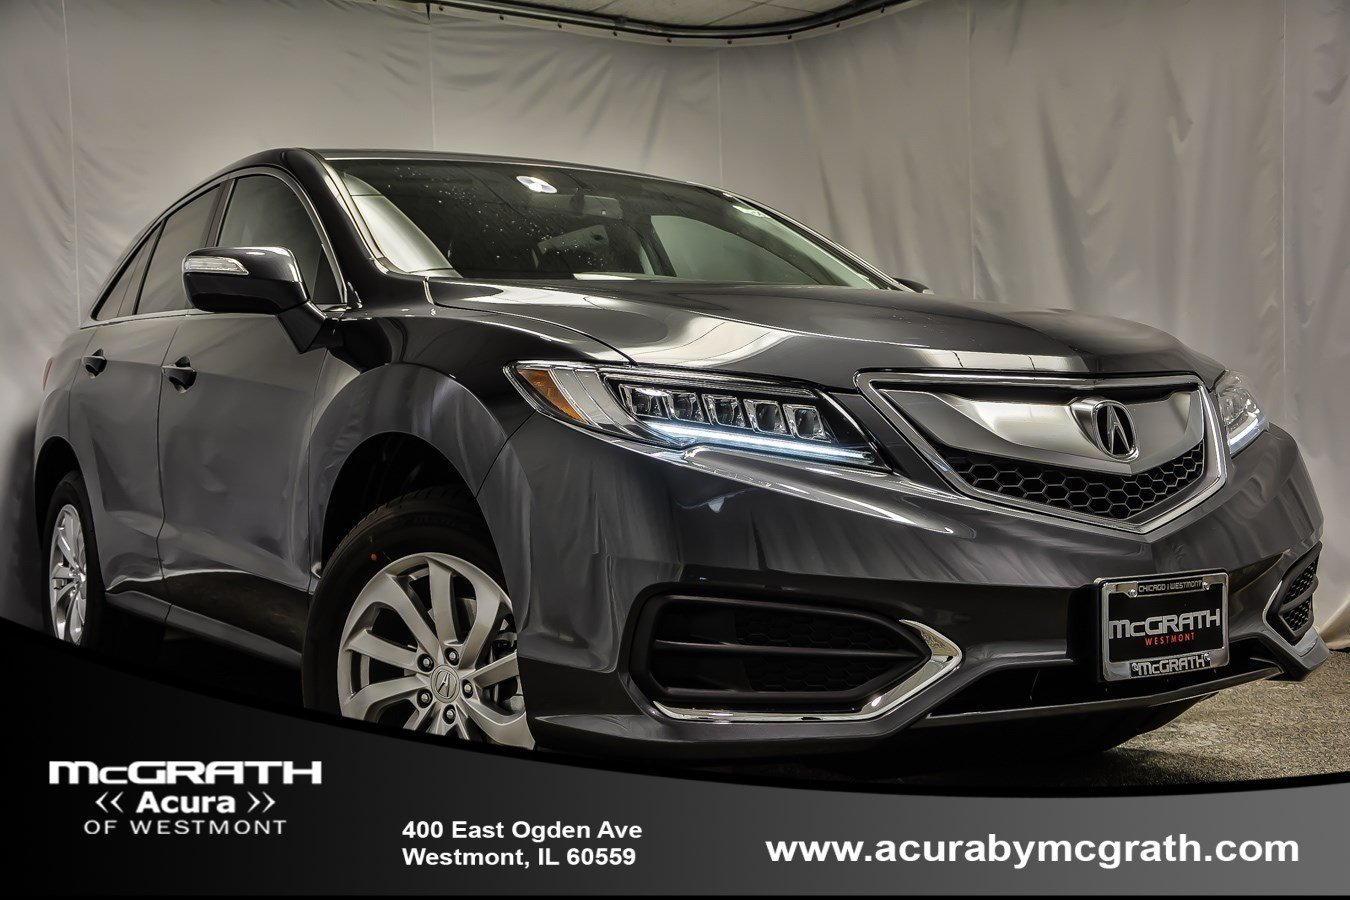 New 2017 Acura RDX Base Sport Utility in Westmont #U6142 | McGrath Acura Westmont on